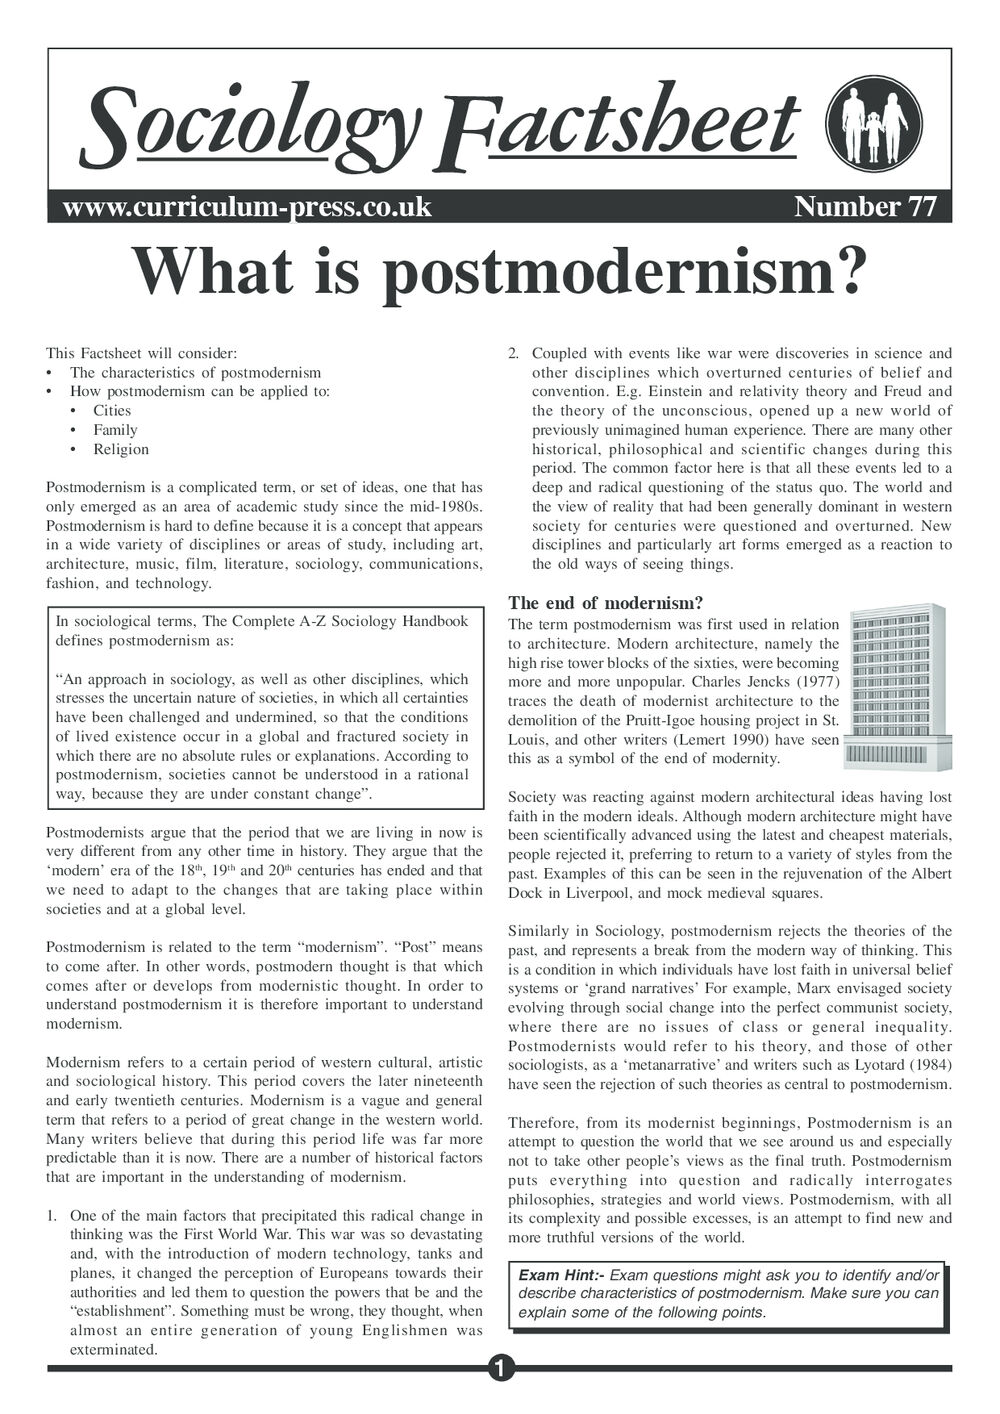 4da6868ec59e Curriculum Press - What is Postmodernism